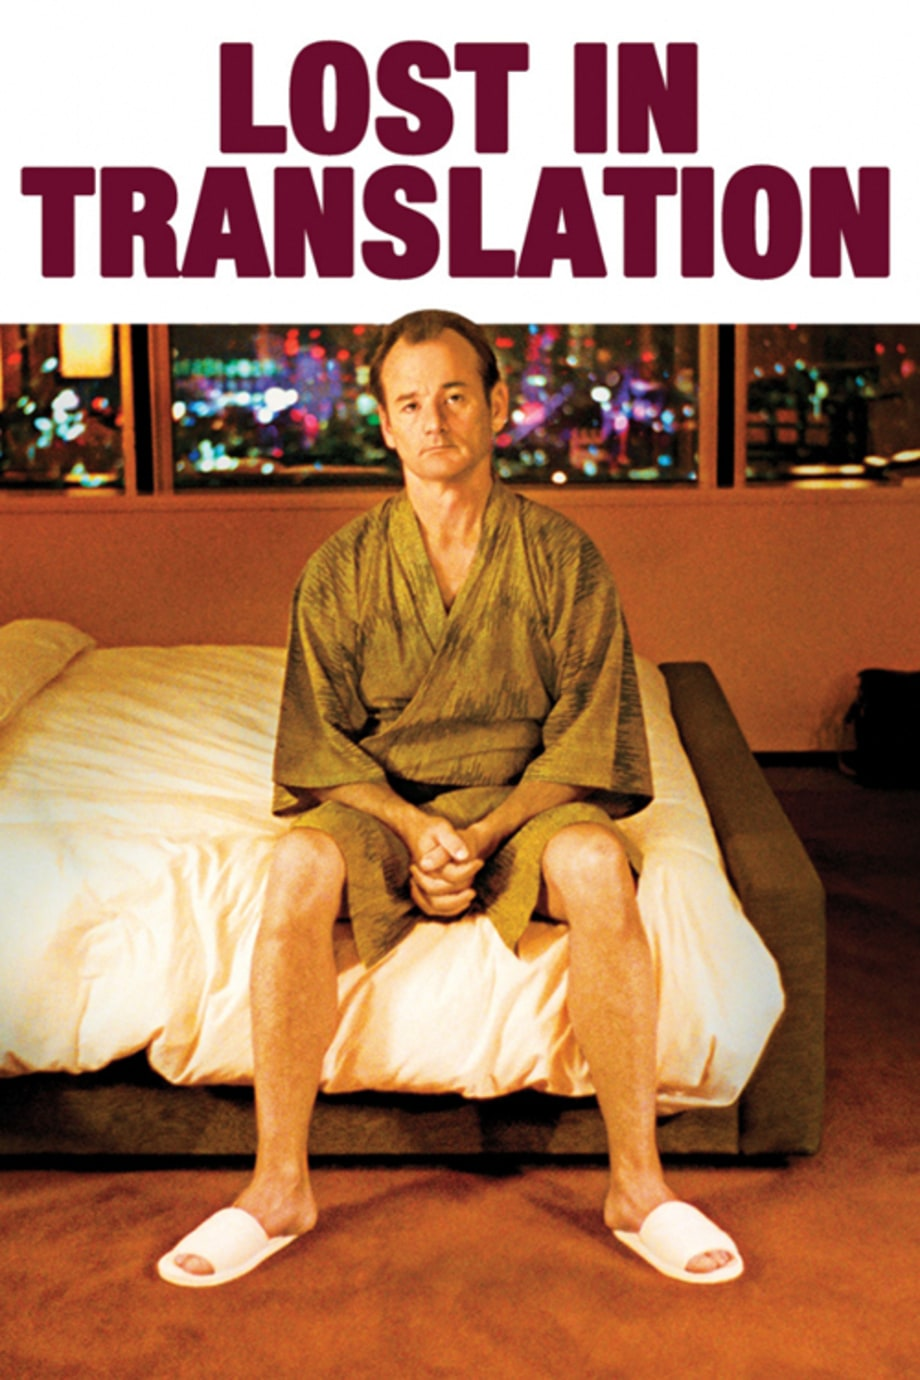 5. 'Lost in Translation'